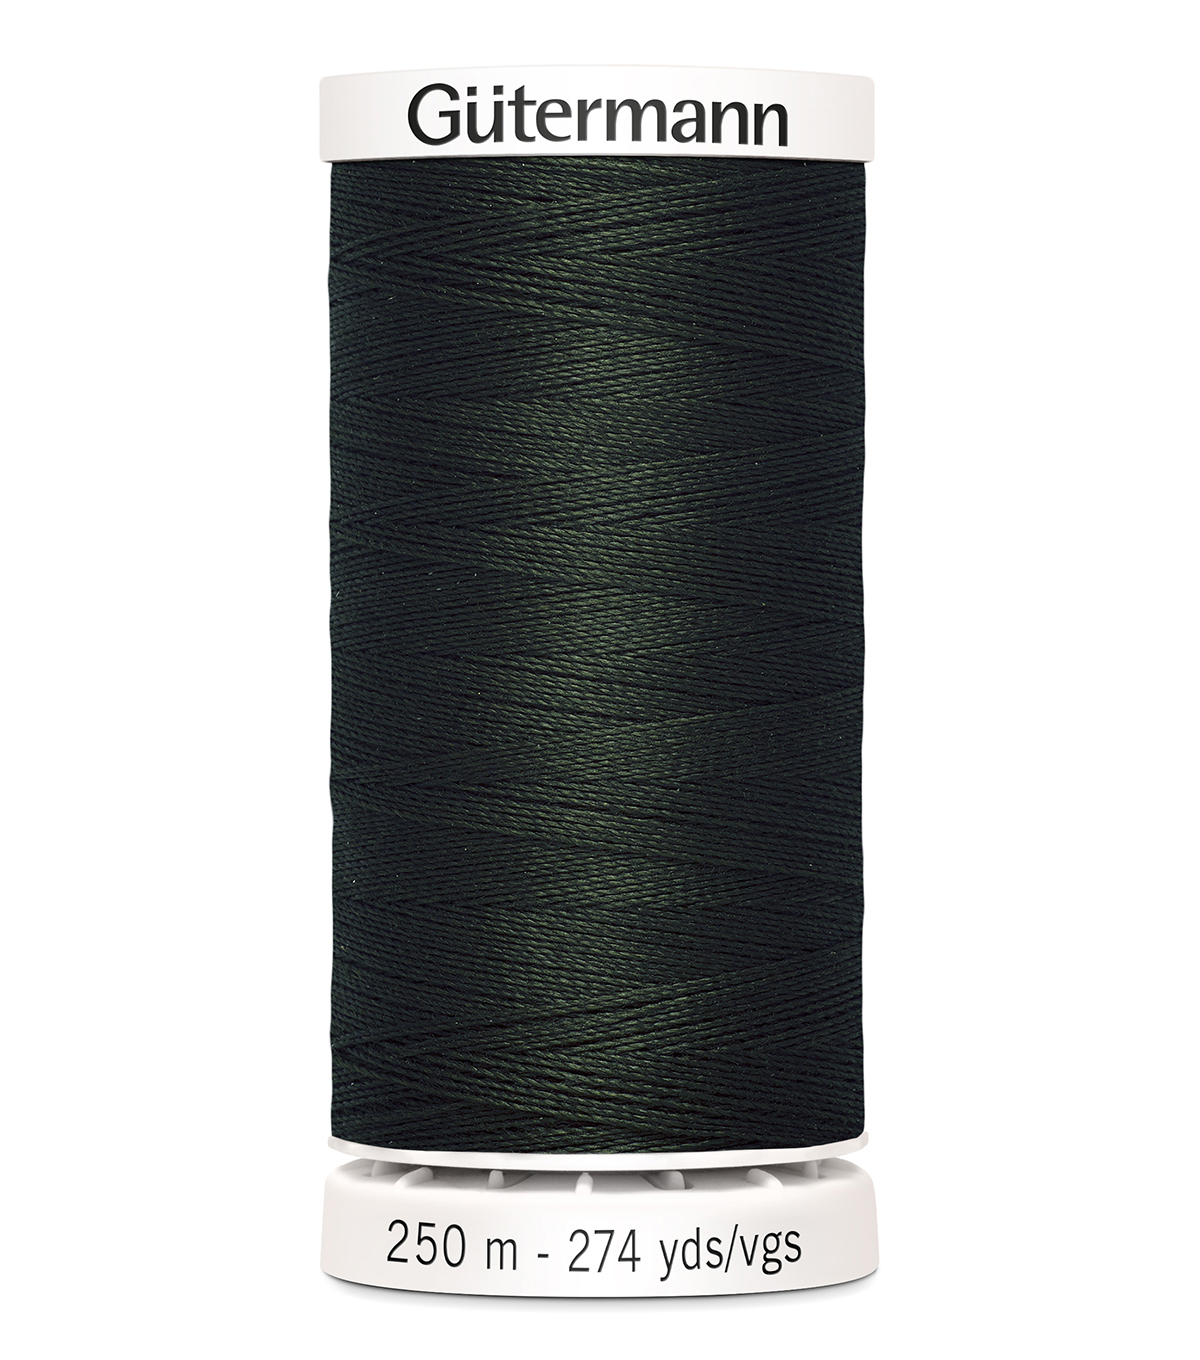 Gutermann Sew-All Thread 273Yds-(600 & 700 series) Cool Tones , Evergreen #793